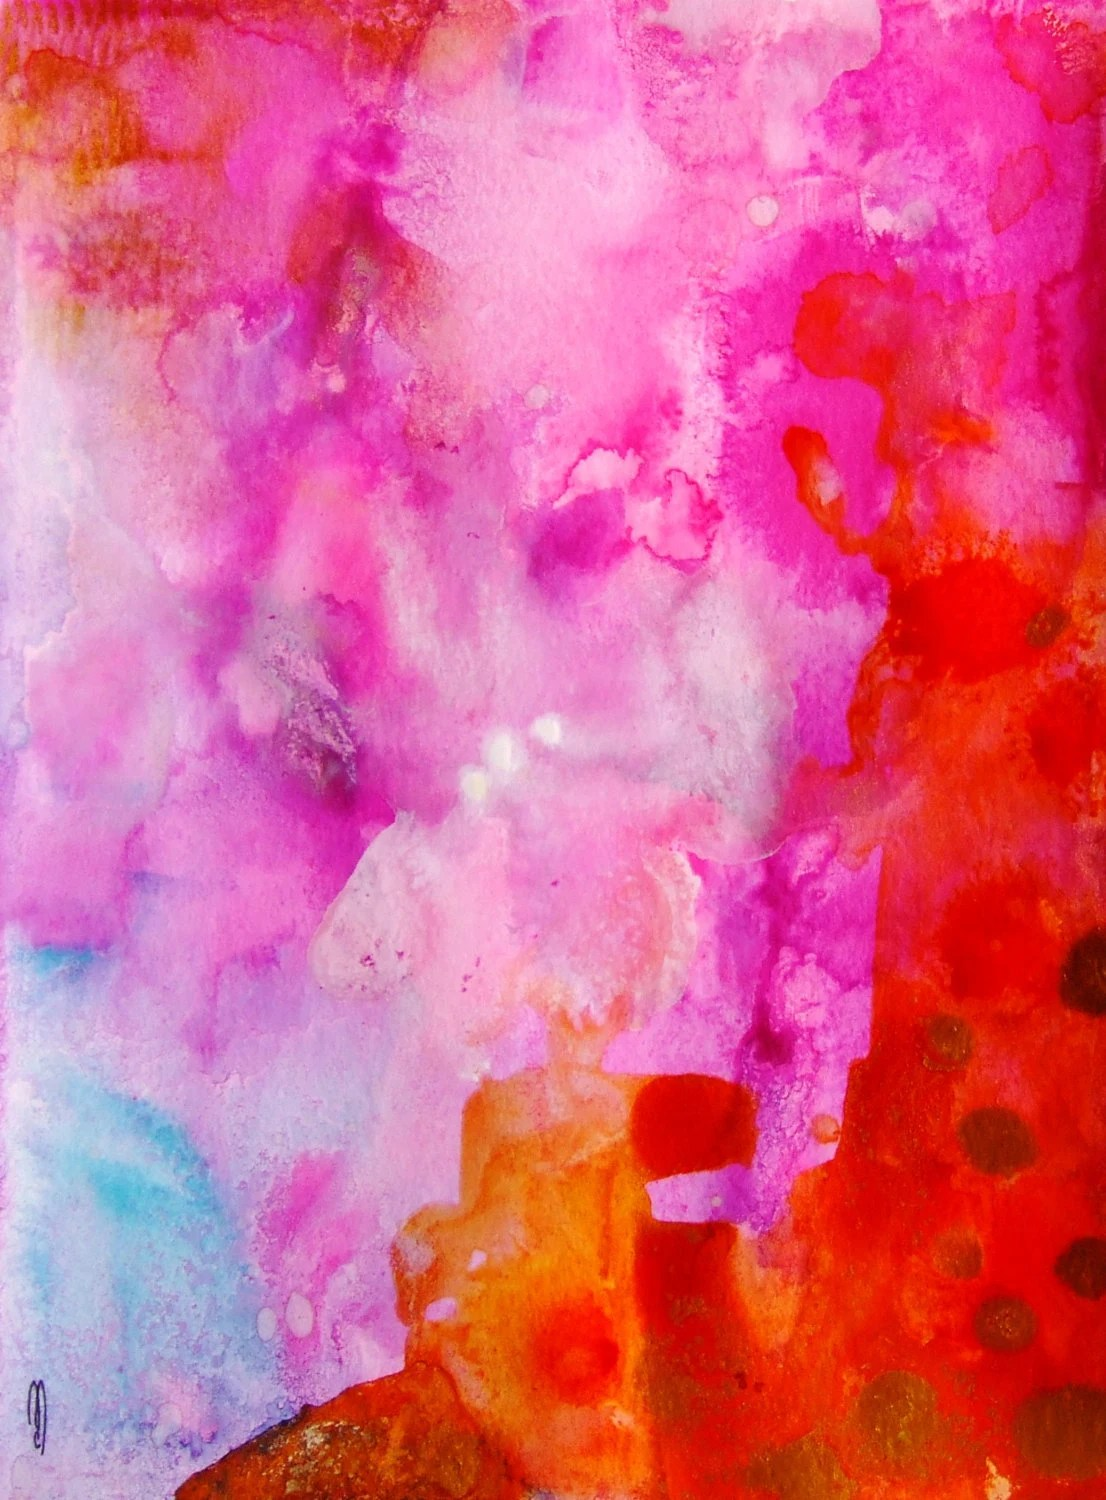 Abstract Art Abstract Painting Abstract Landscape Abstract Decor Pink Gold Contemporary Art Fine Art Watercolor Ink Abstract Wall Art - CelineArtGalerie